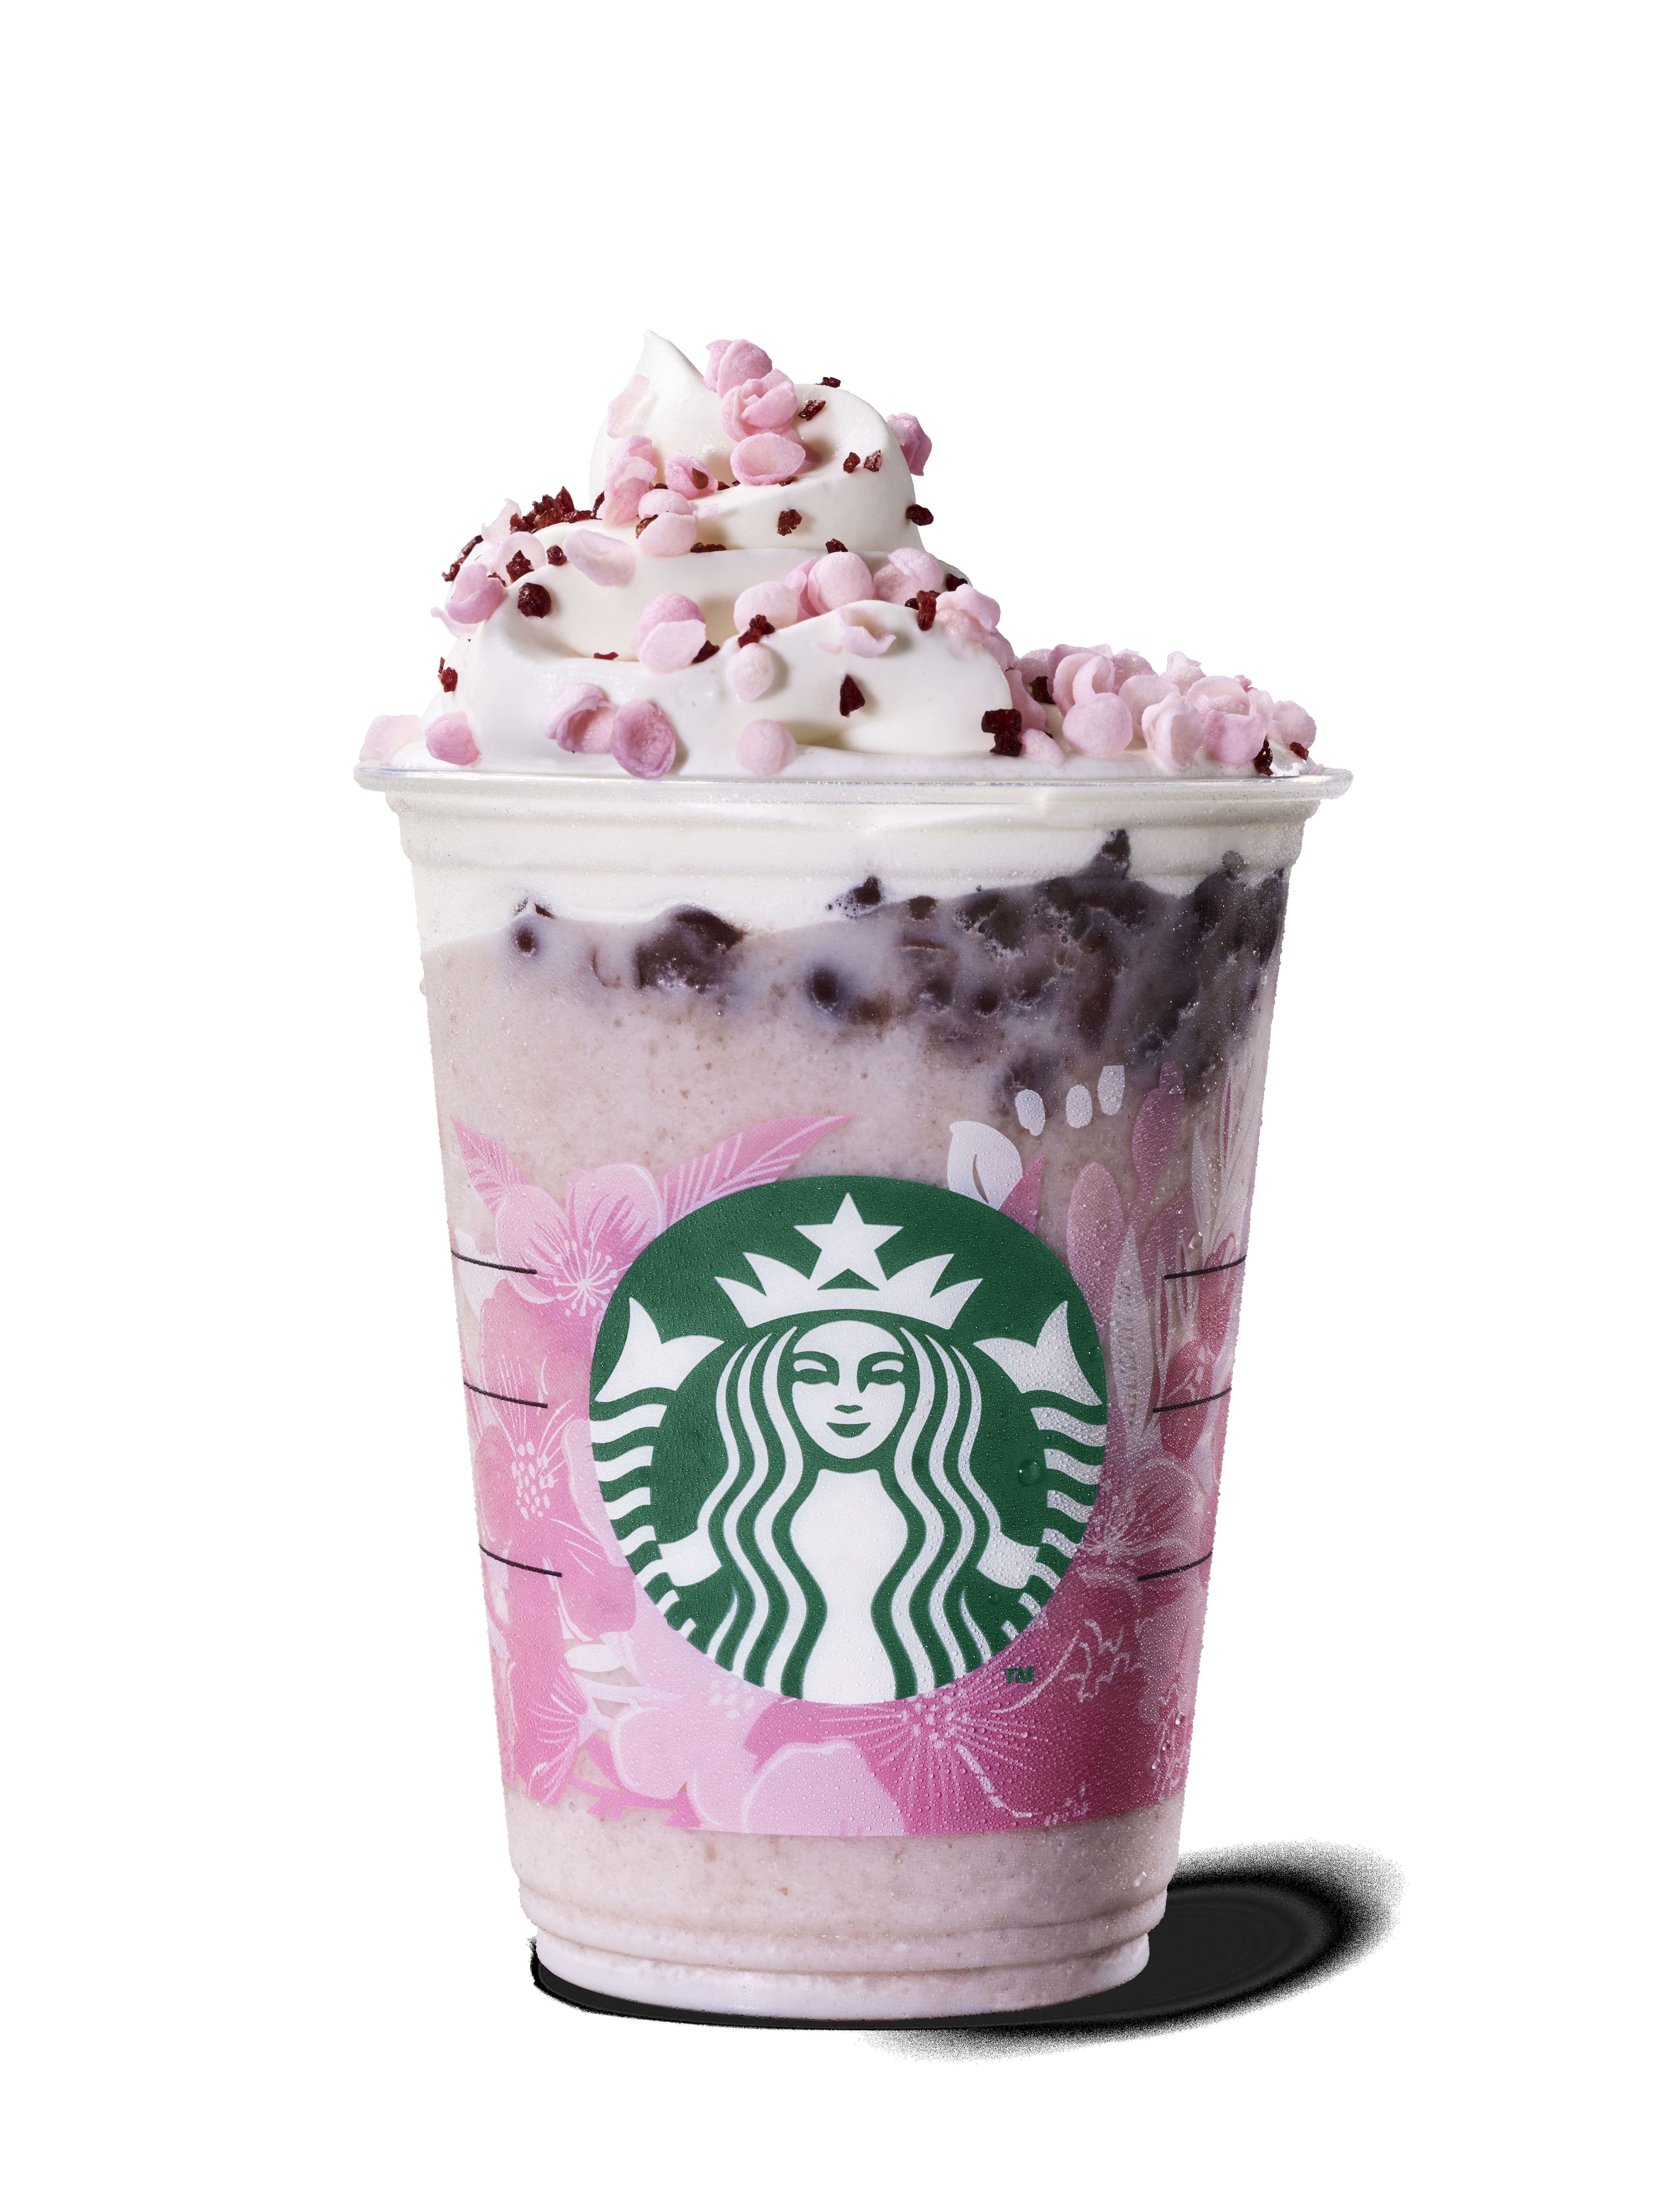 New Cherry Blossom-inspired Frappuccinos and Sakura Merchandise await at Starbucks - Alvinology